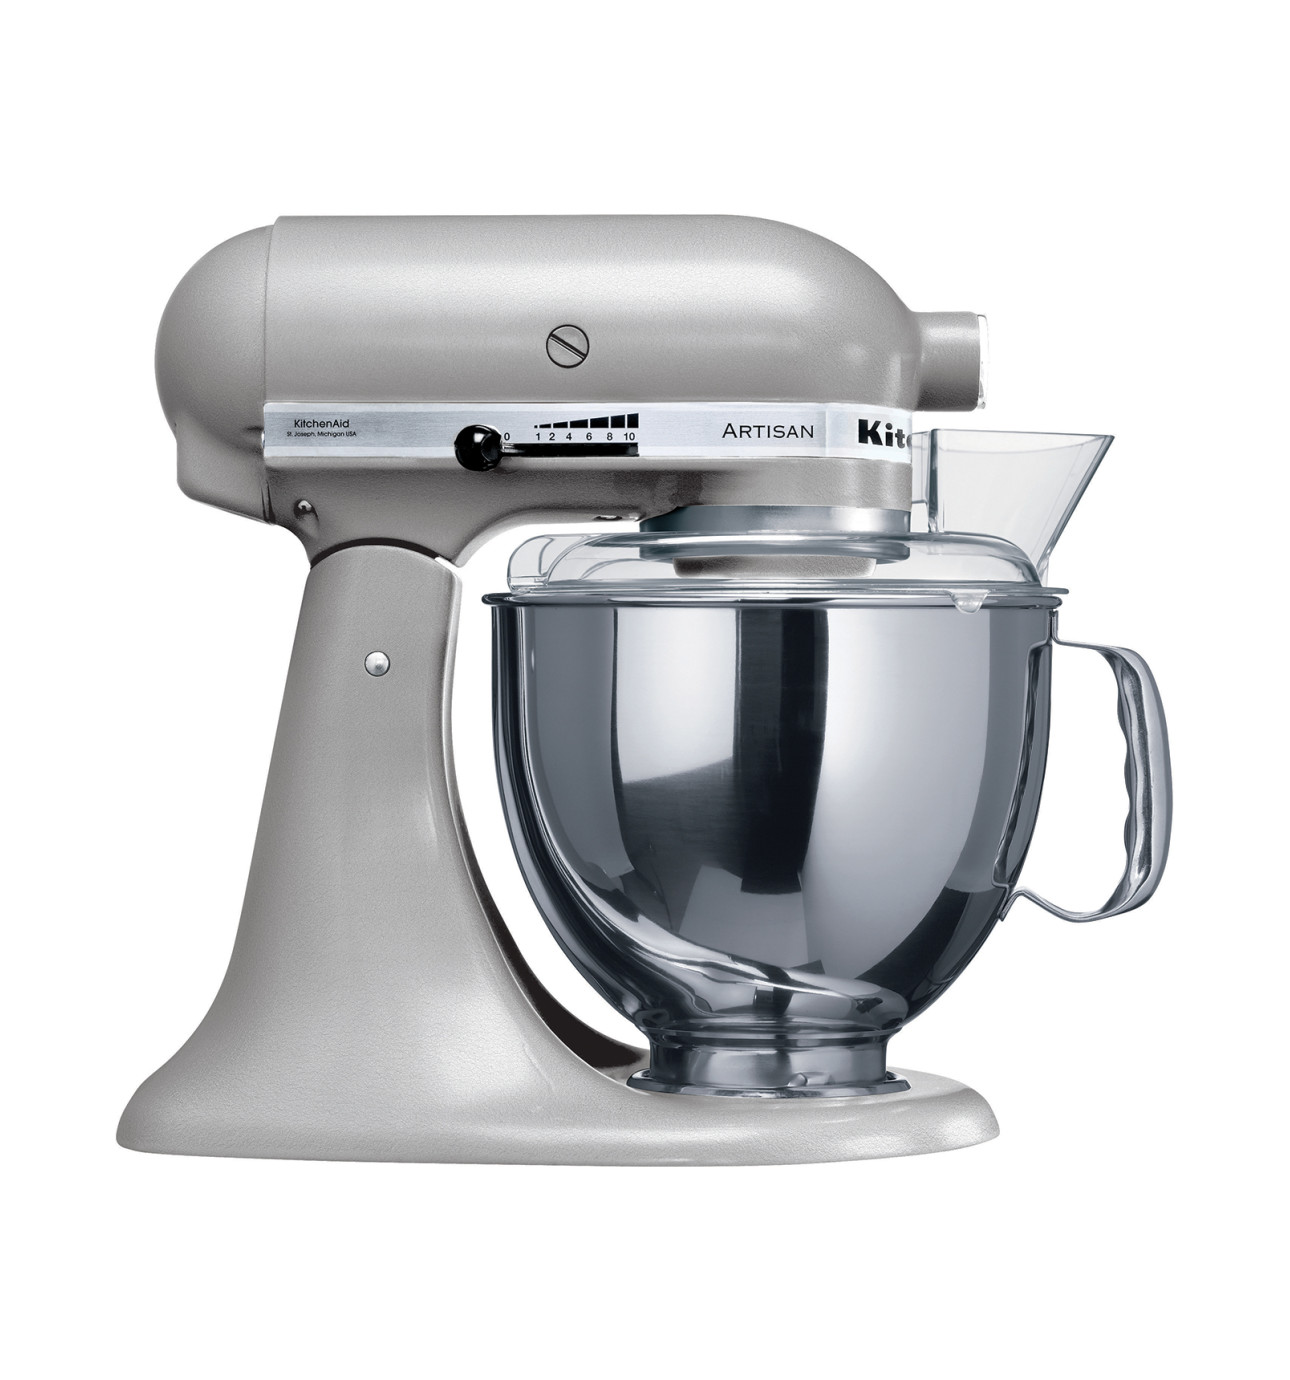 kitchenaid ksm160. kitchenaid ksm160 s